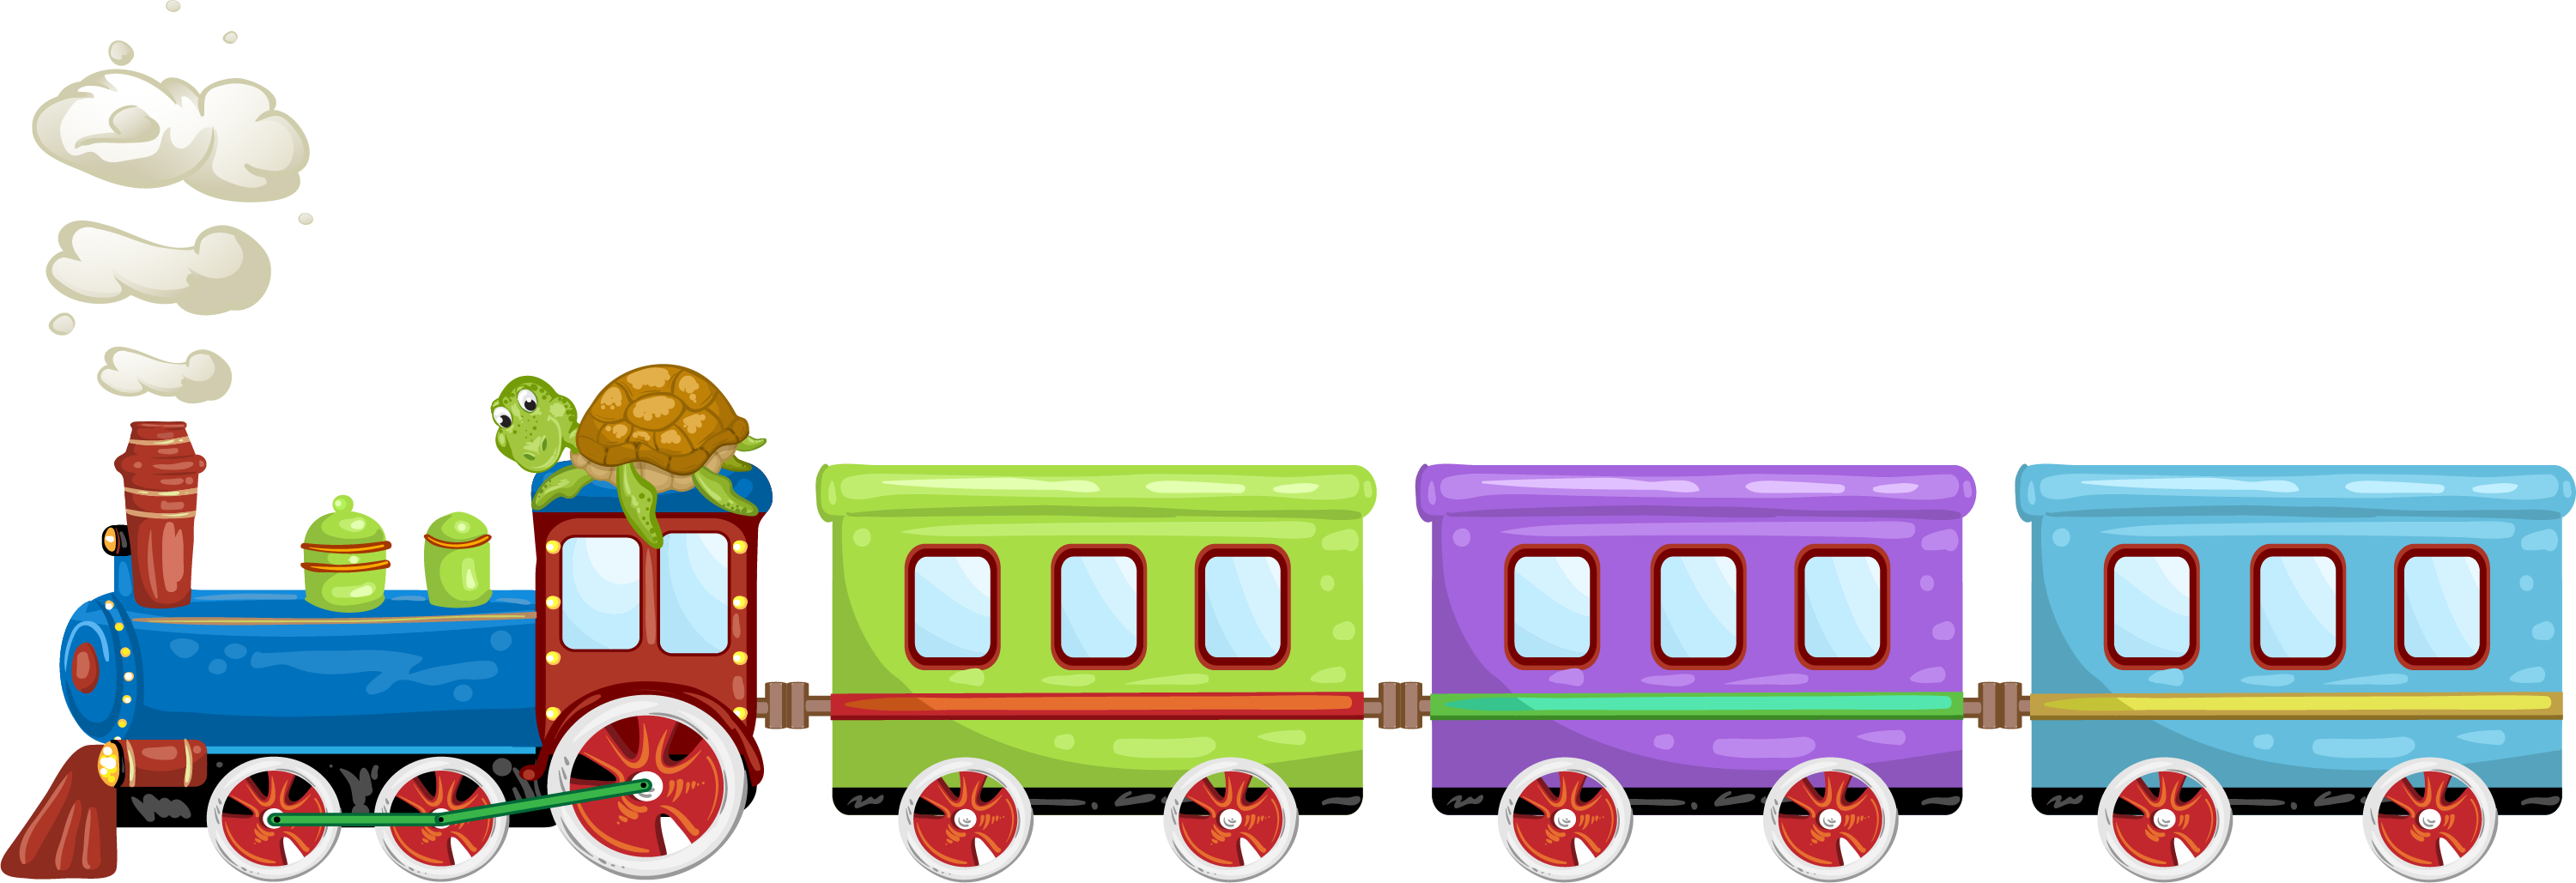 Train cartoon png. Toy illustration colorful transprent